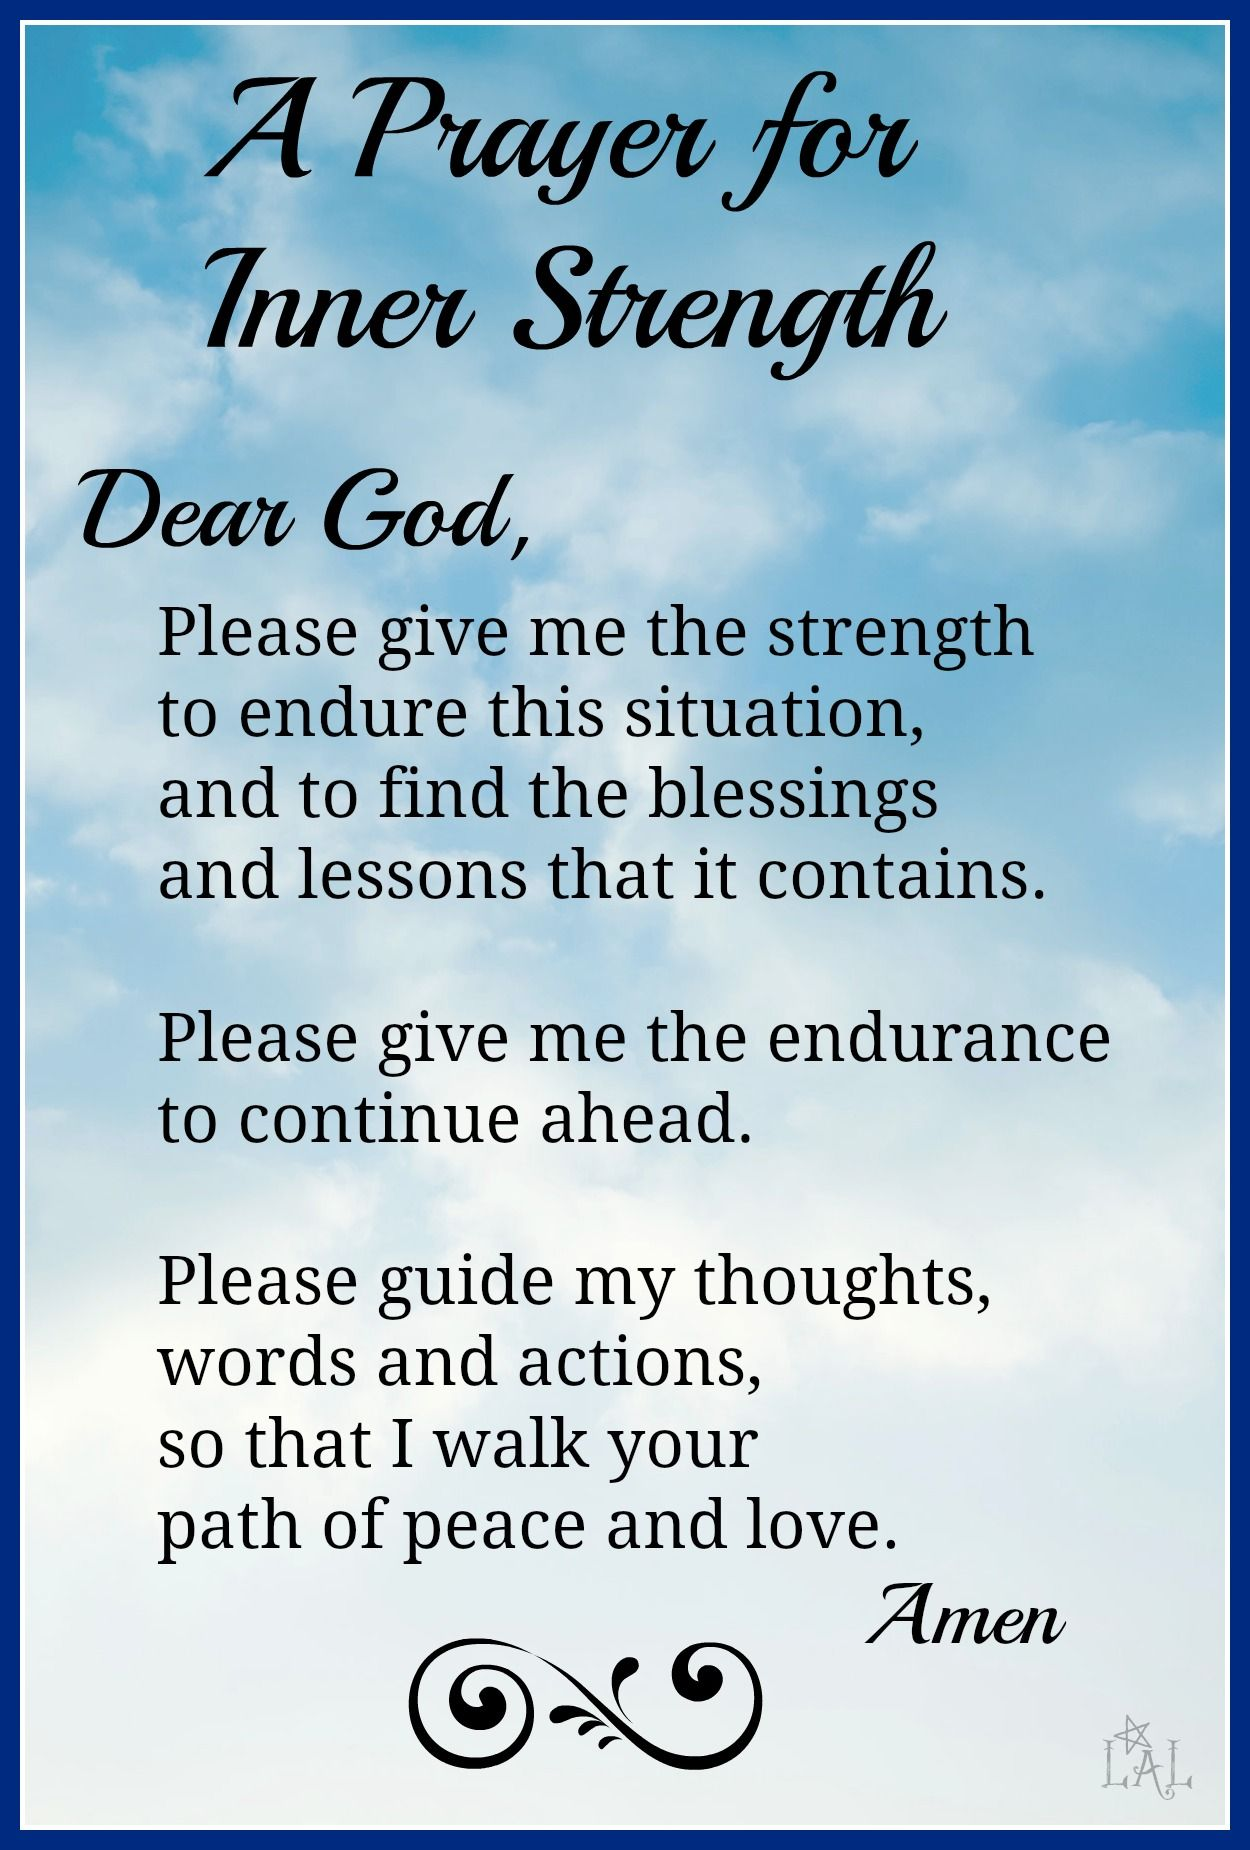 Prayer Quotes Impressive Prayer For Inner Strength  Strength Quotes Strength And Blessings Inspiration Design